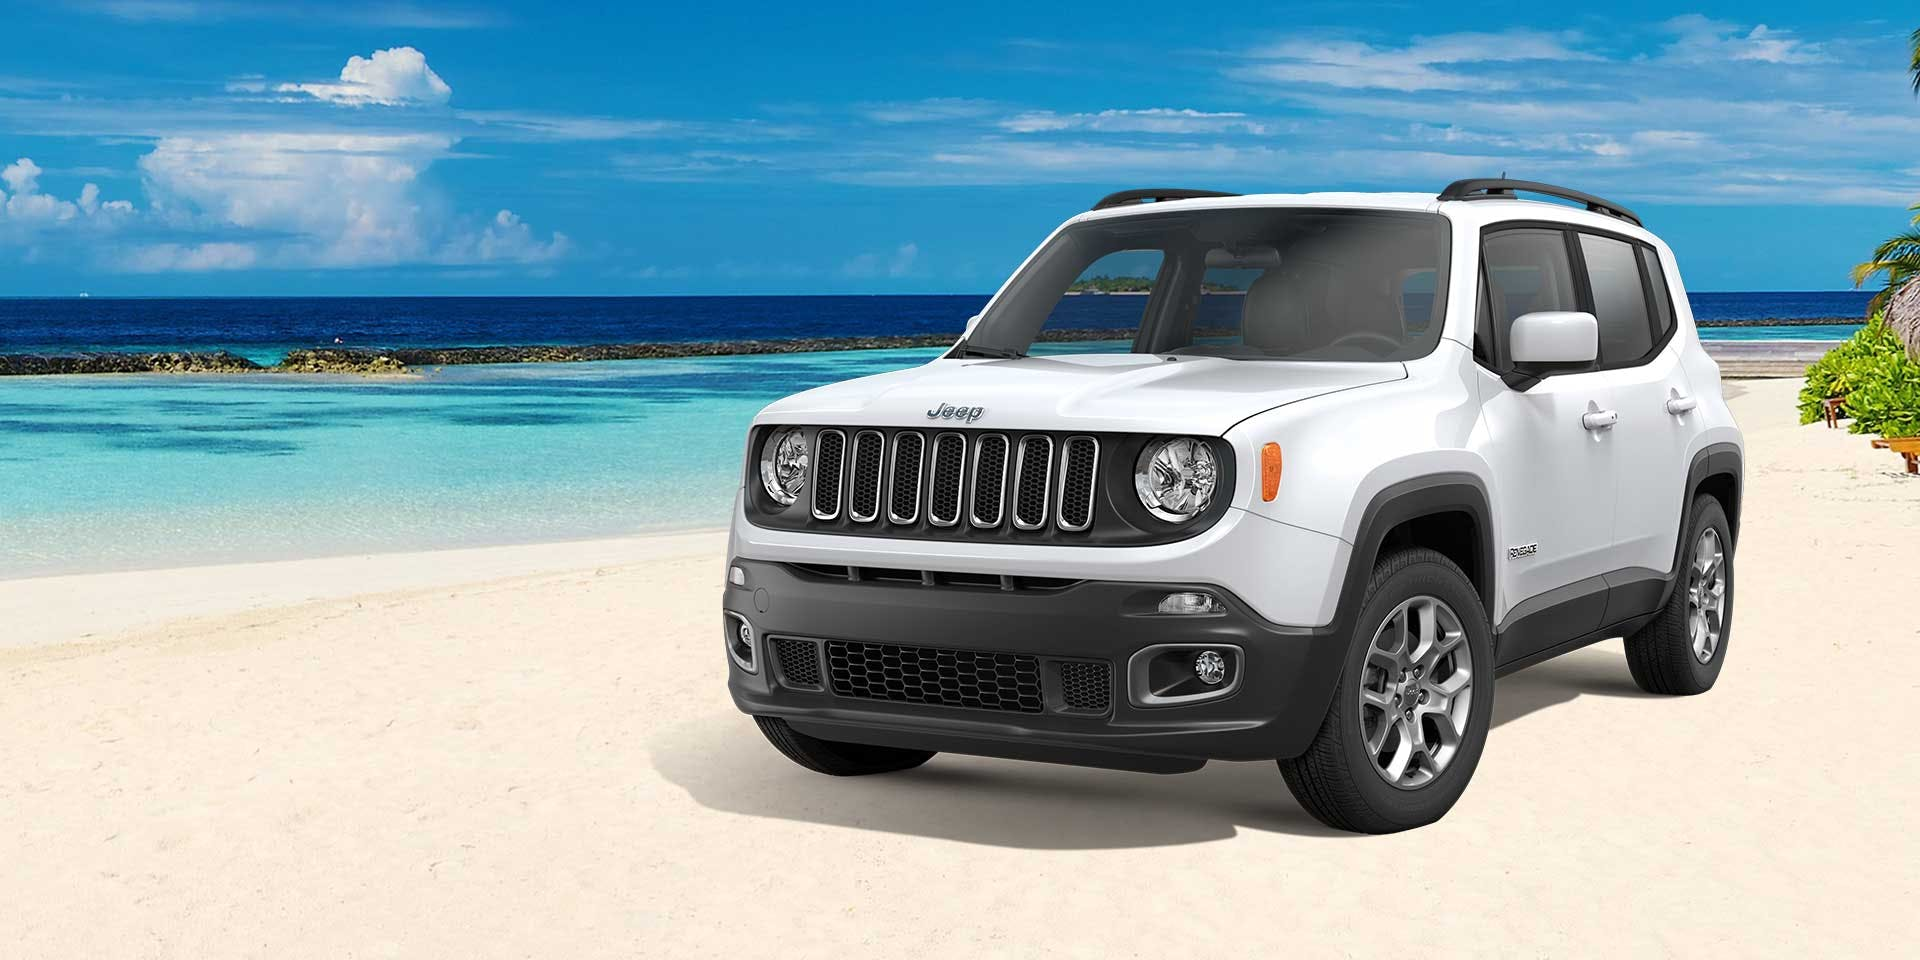 SJ2070 2020 Renegade July summer clearance event summer sales event fourth of july sales event diehl automotive chrysler jeep dodge ram lease special diehl of salem ohio